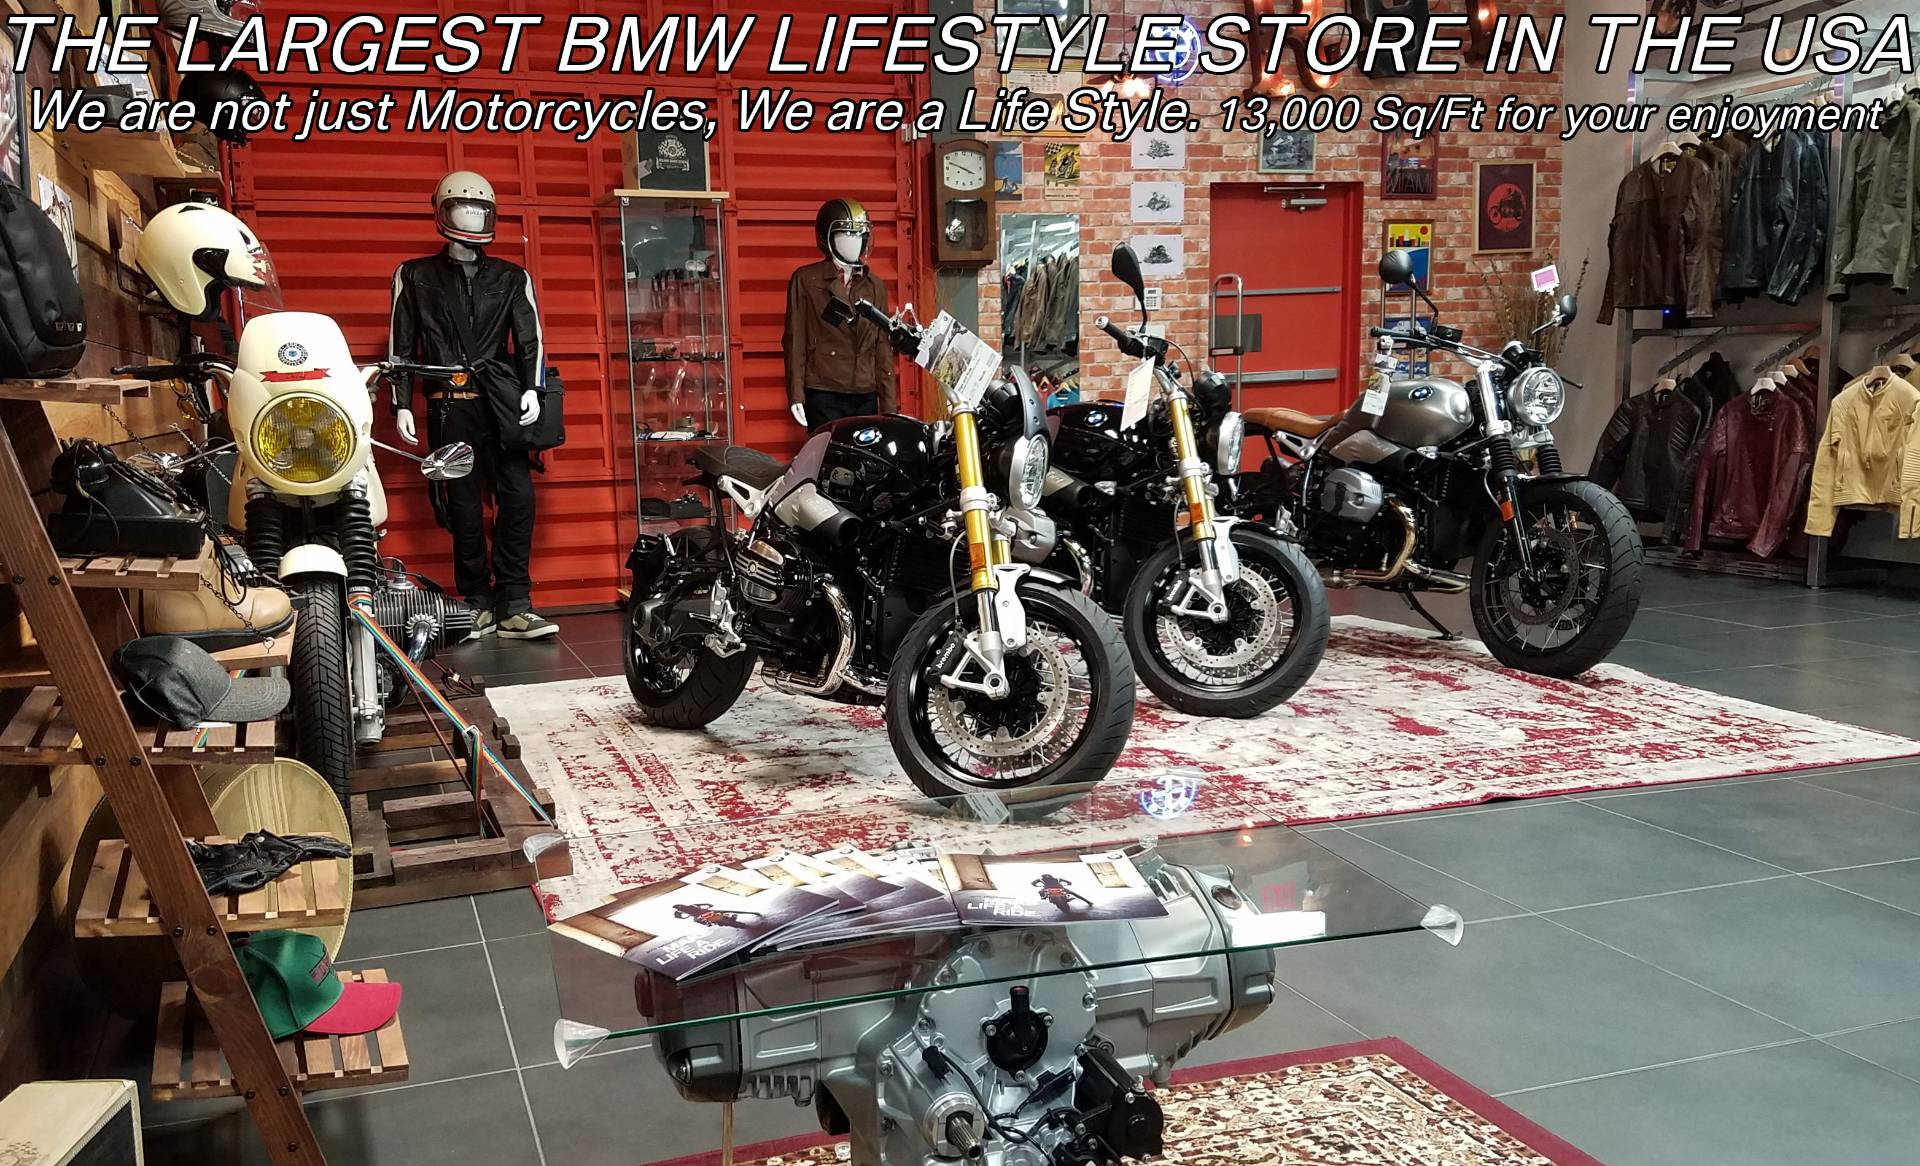 BMW Motorcycles of Miami, Motorcycles of Miami, Motorcycles Miami, New Motorcycles, Used Motorcycles, pre-owned. #BMWMotorcyclesOfMiami #MotorcyclesOfMiami. - Photo 20